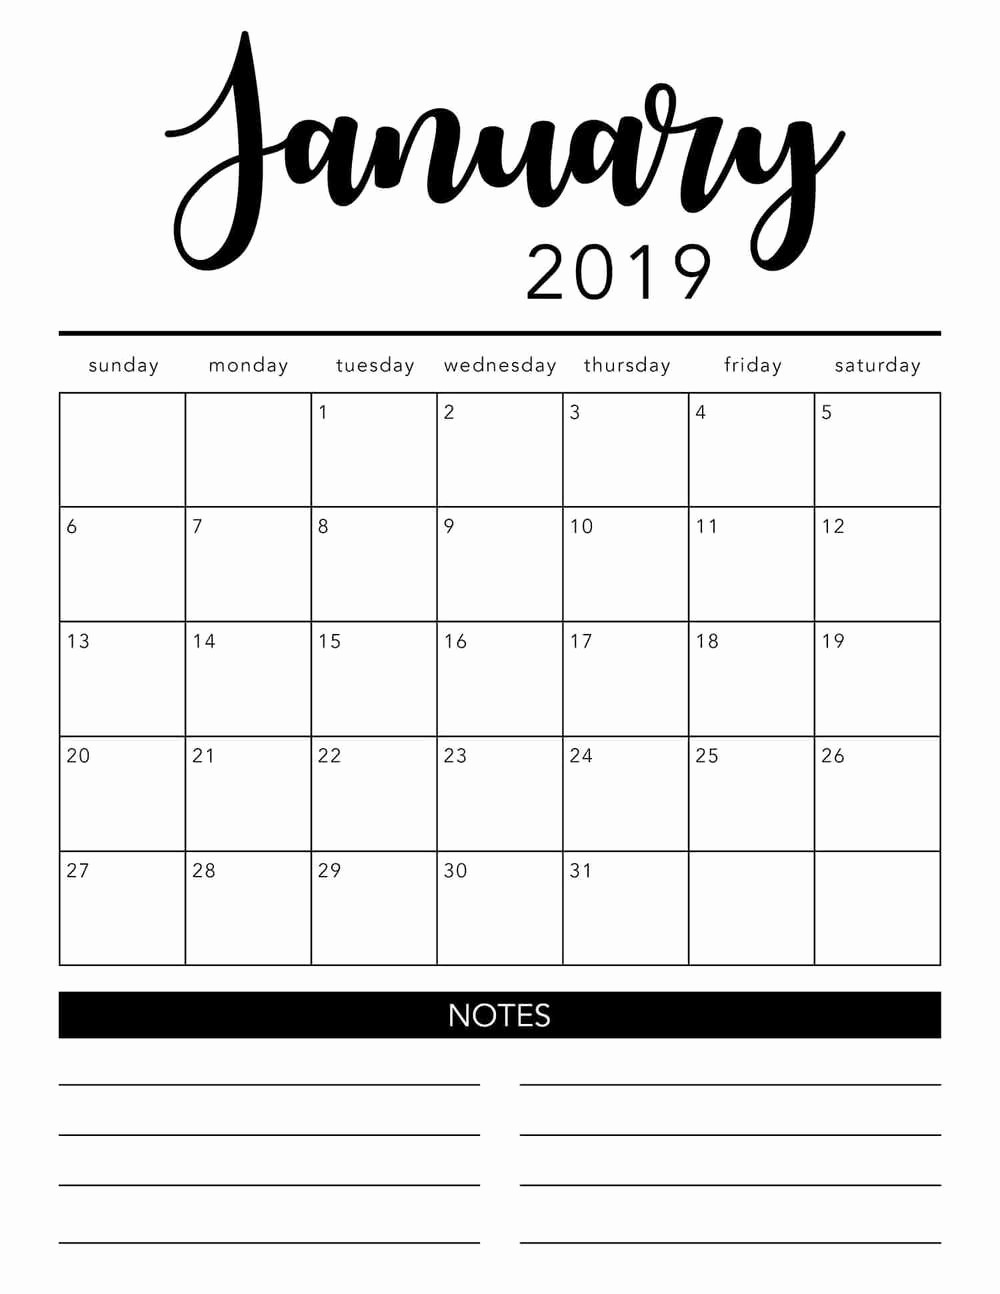 Free Printable Calendar Templates 2019 Lovely Free 2019 Printable Calendar Template 2 Colors I